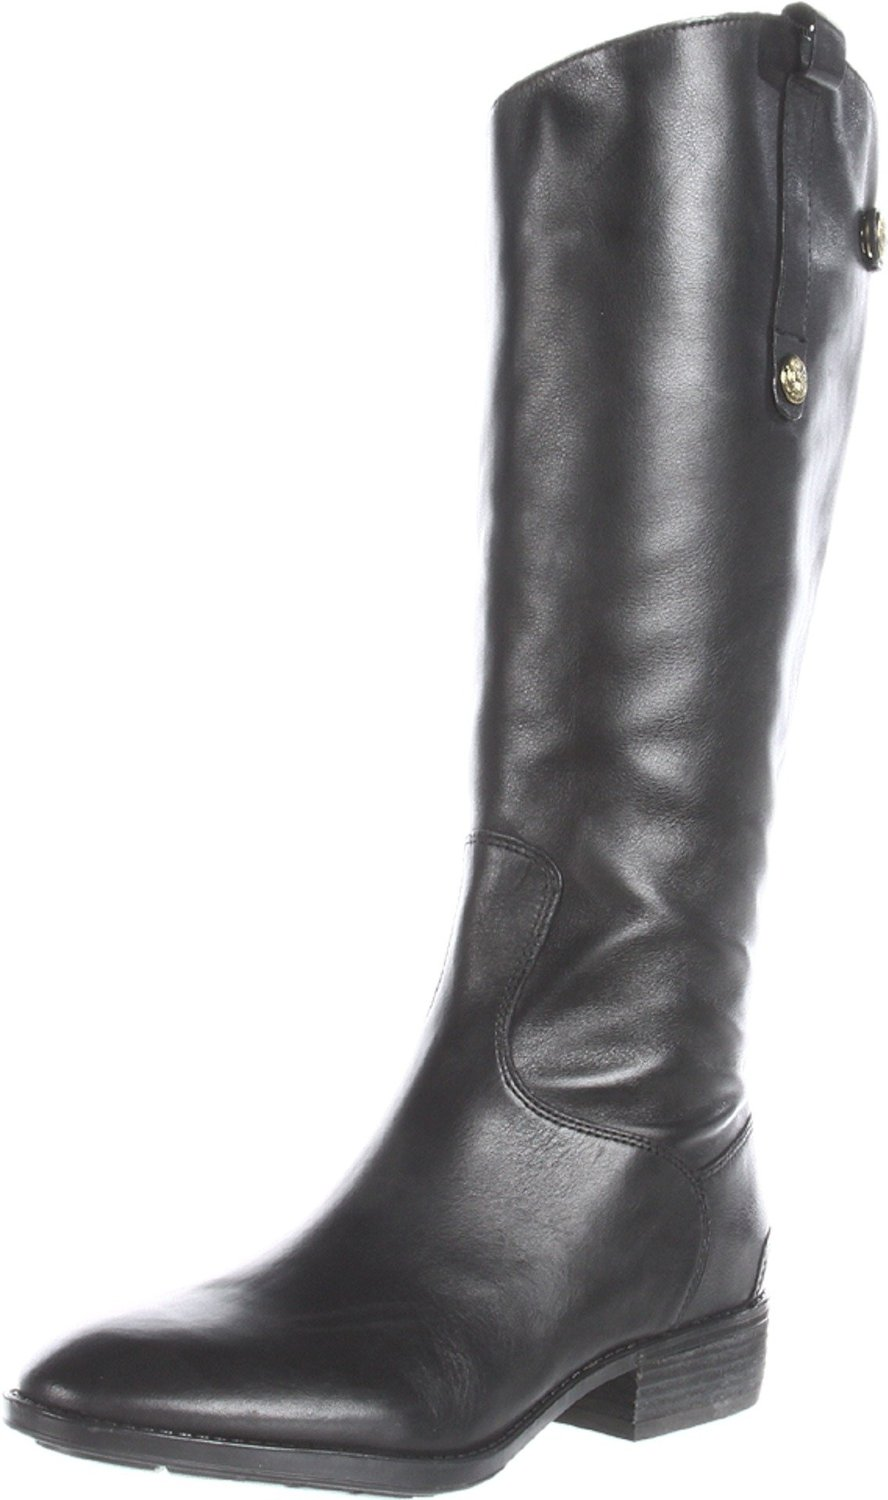 Sam Edelman Penny Riding Boot in Black Color